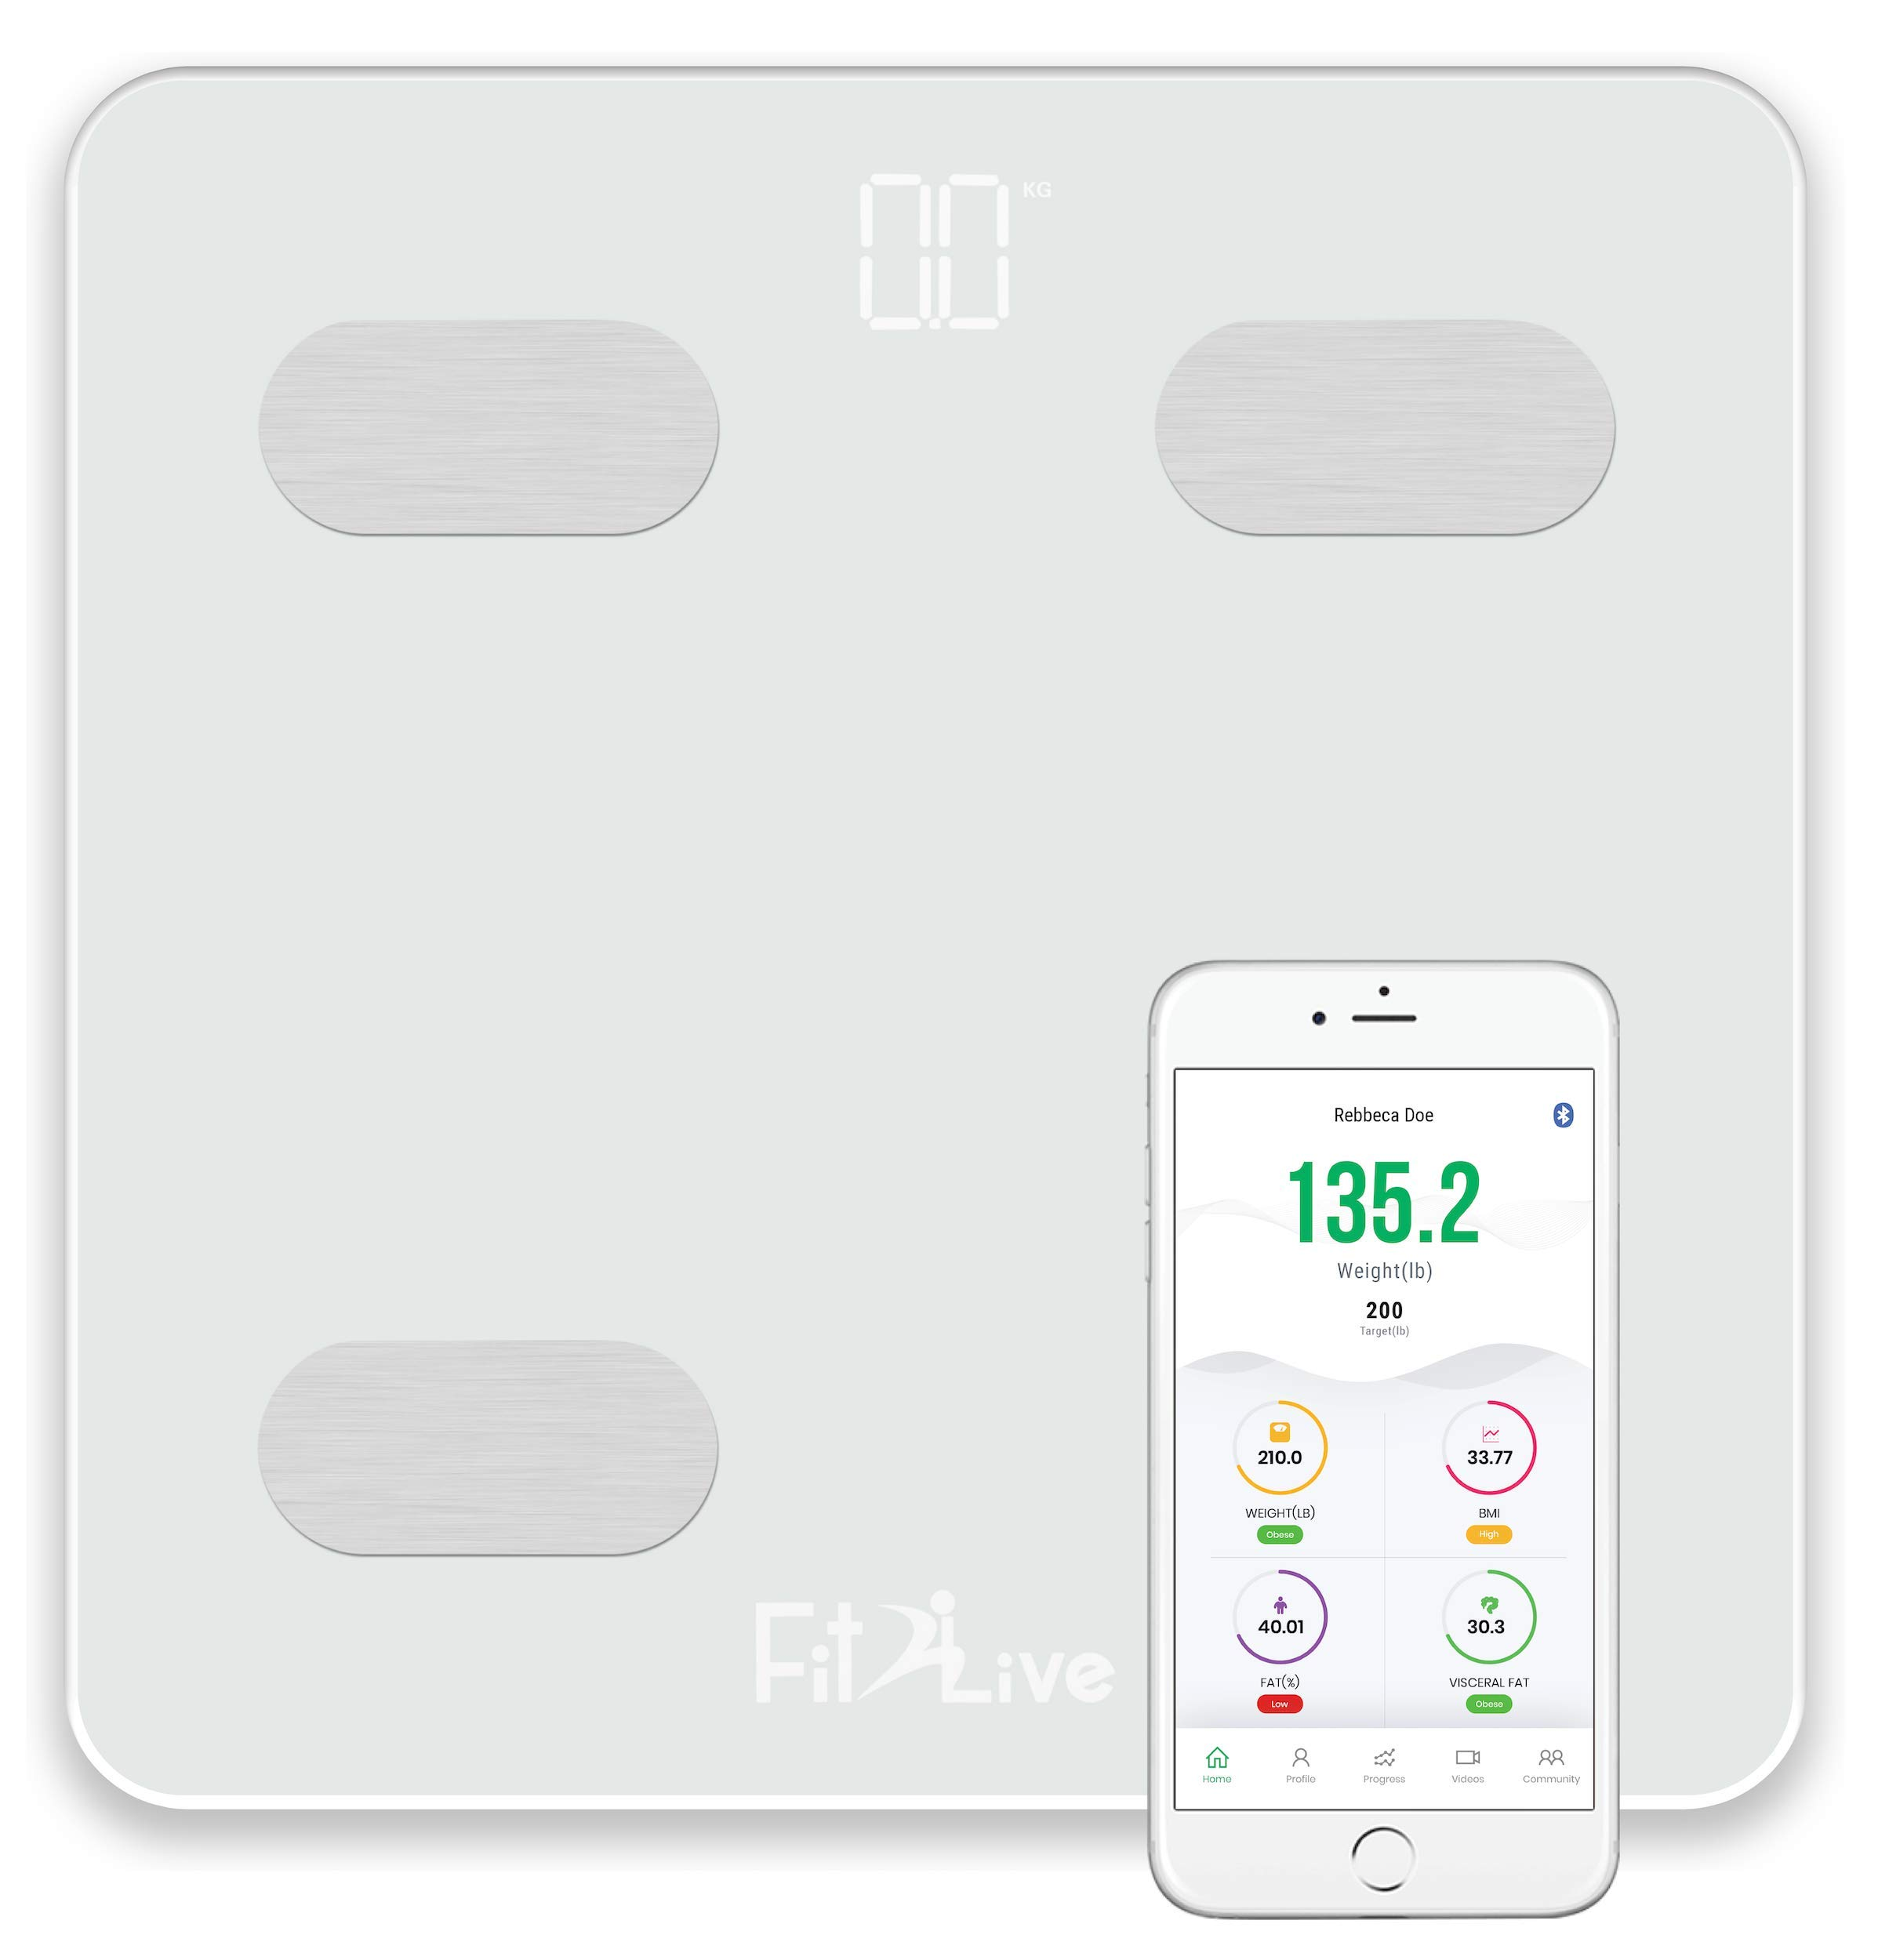 Bluetooth Smart Body Fat Scale- Fit2Live Digital Bathroom Weight Scale, Body Composition Analyzer, USB Rechargeable, with iOS and Android App for Body Weight, Fat, Water, BMI, BMR, Muscle Mass (White) by Fit2Live